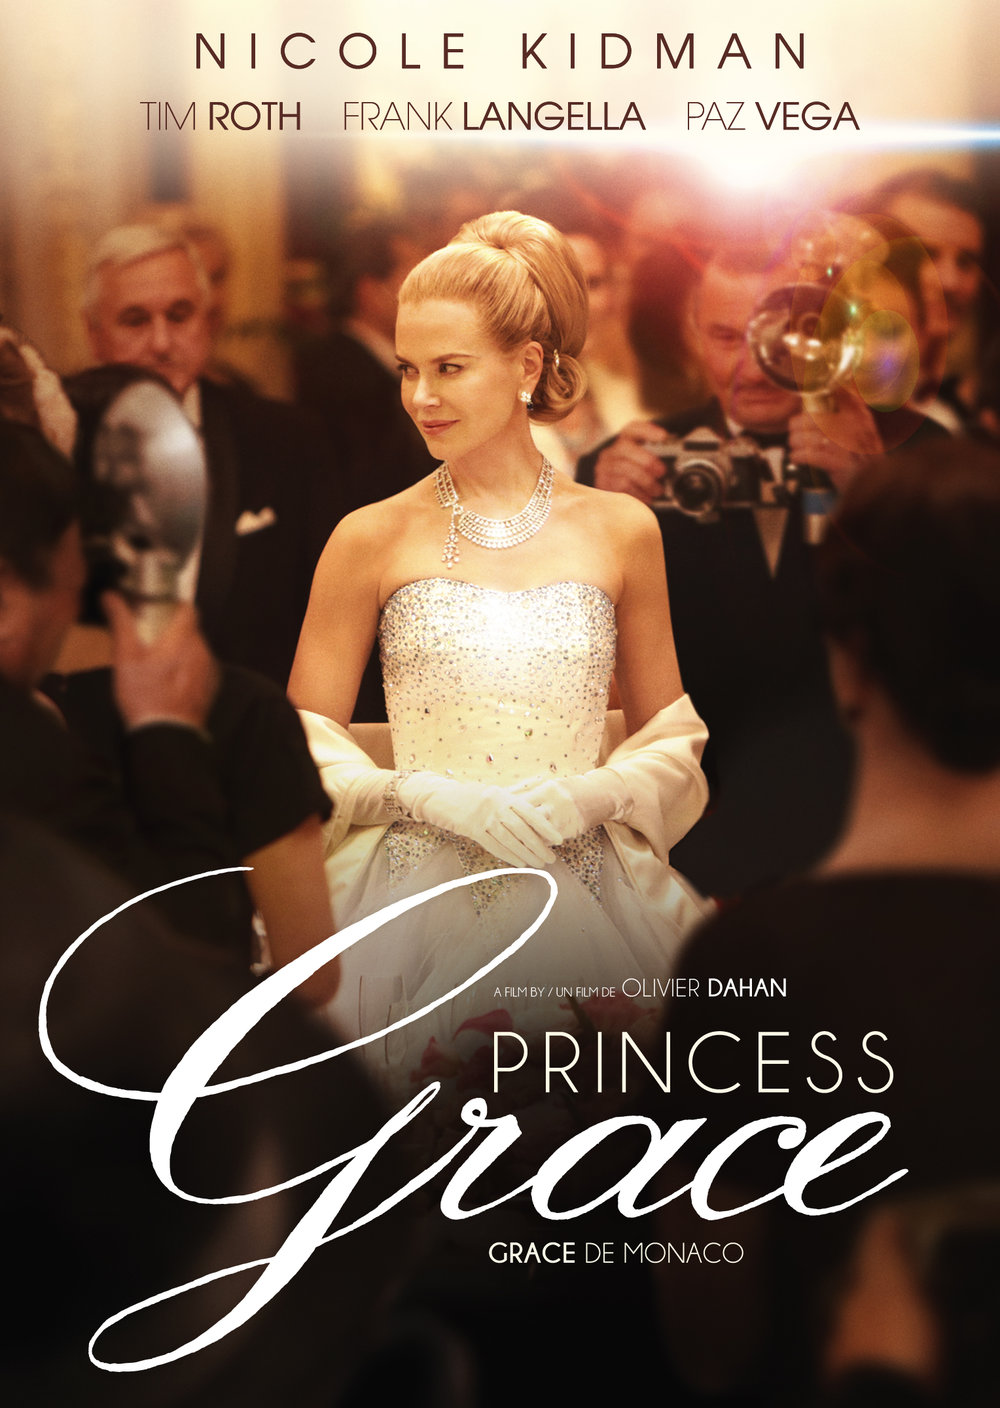 Princess-Grace-Movie-Poster.jpg